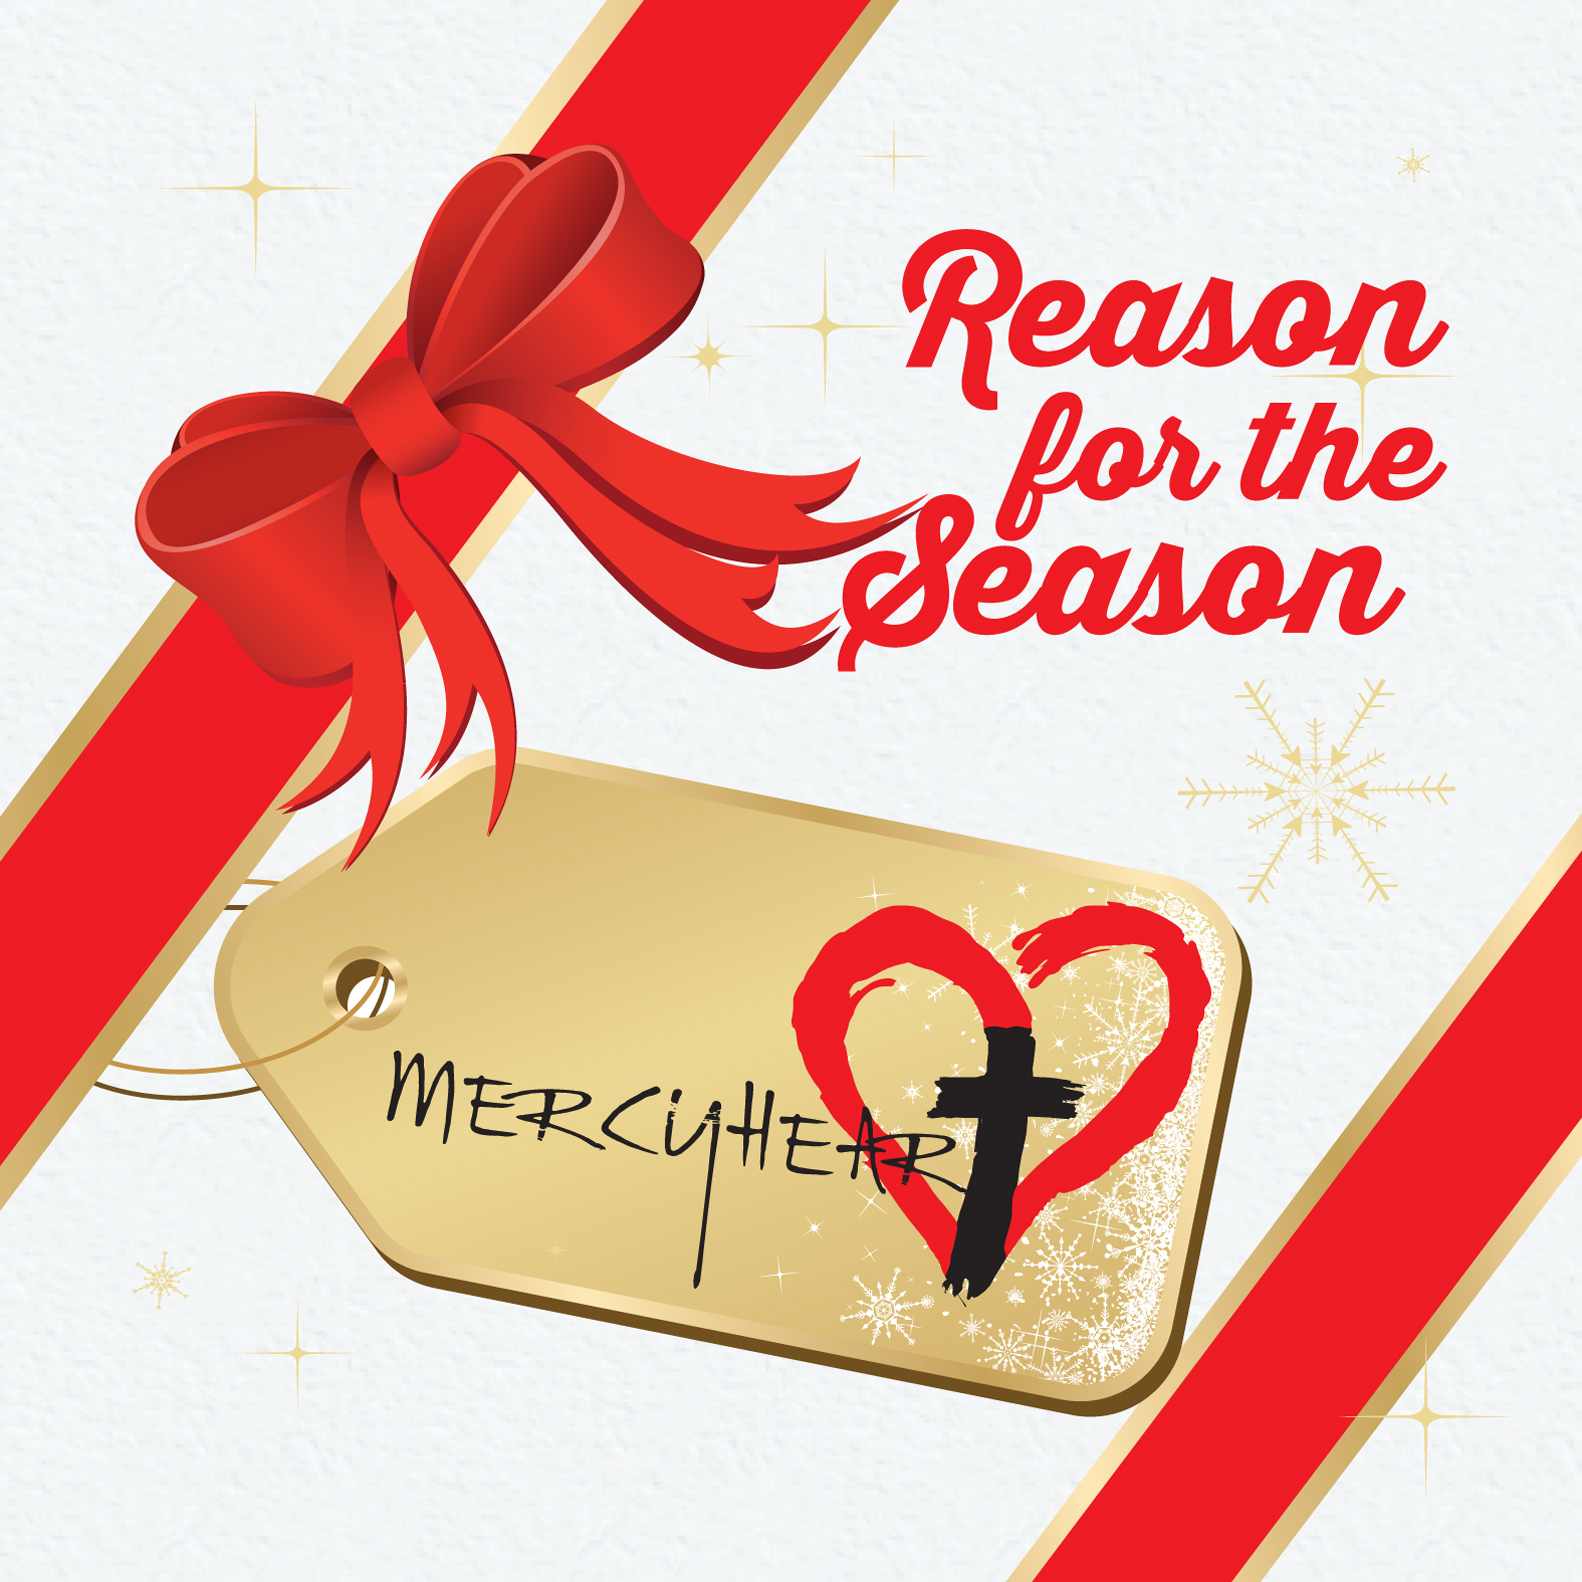 Mercy heart - Reason For The Season